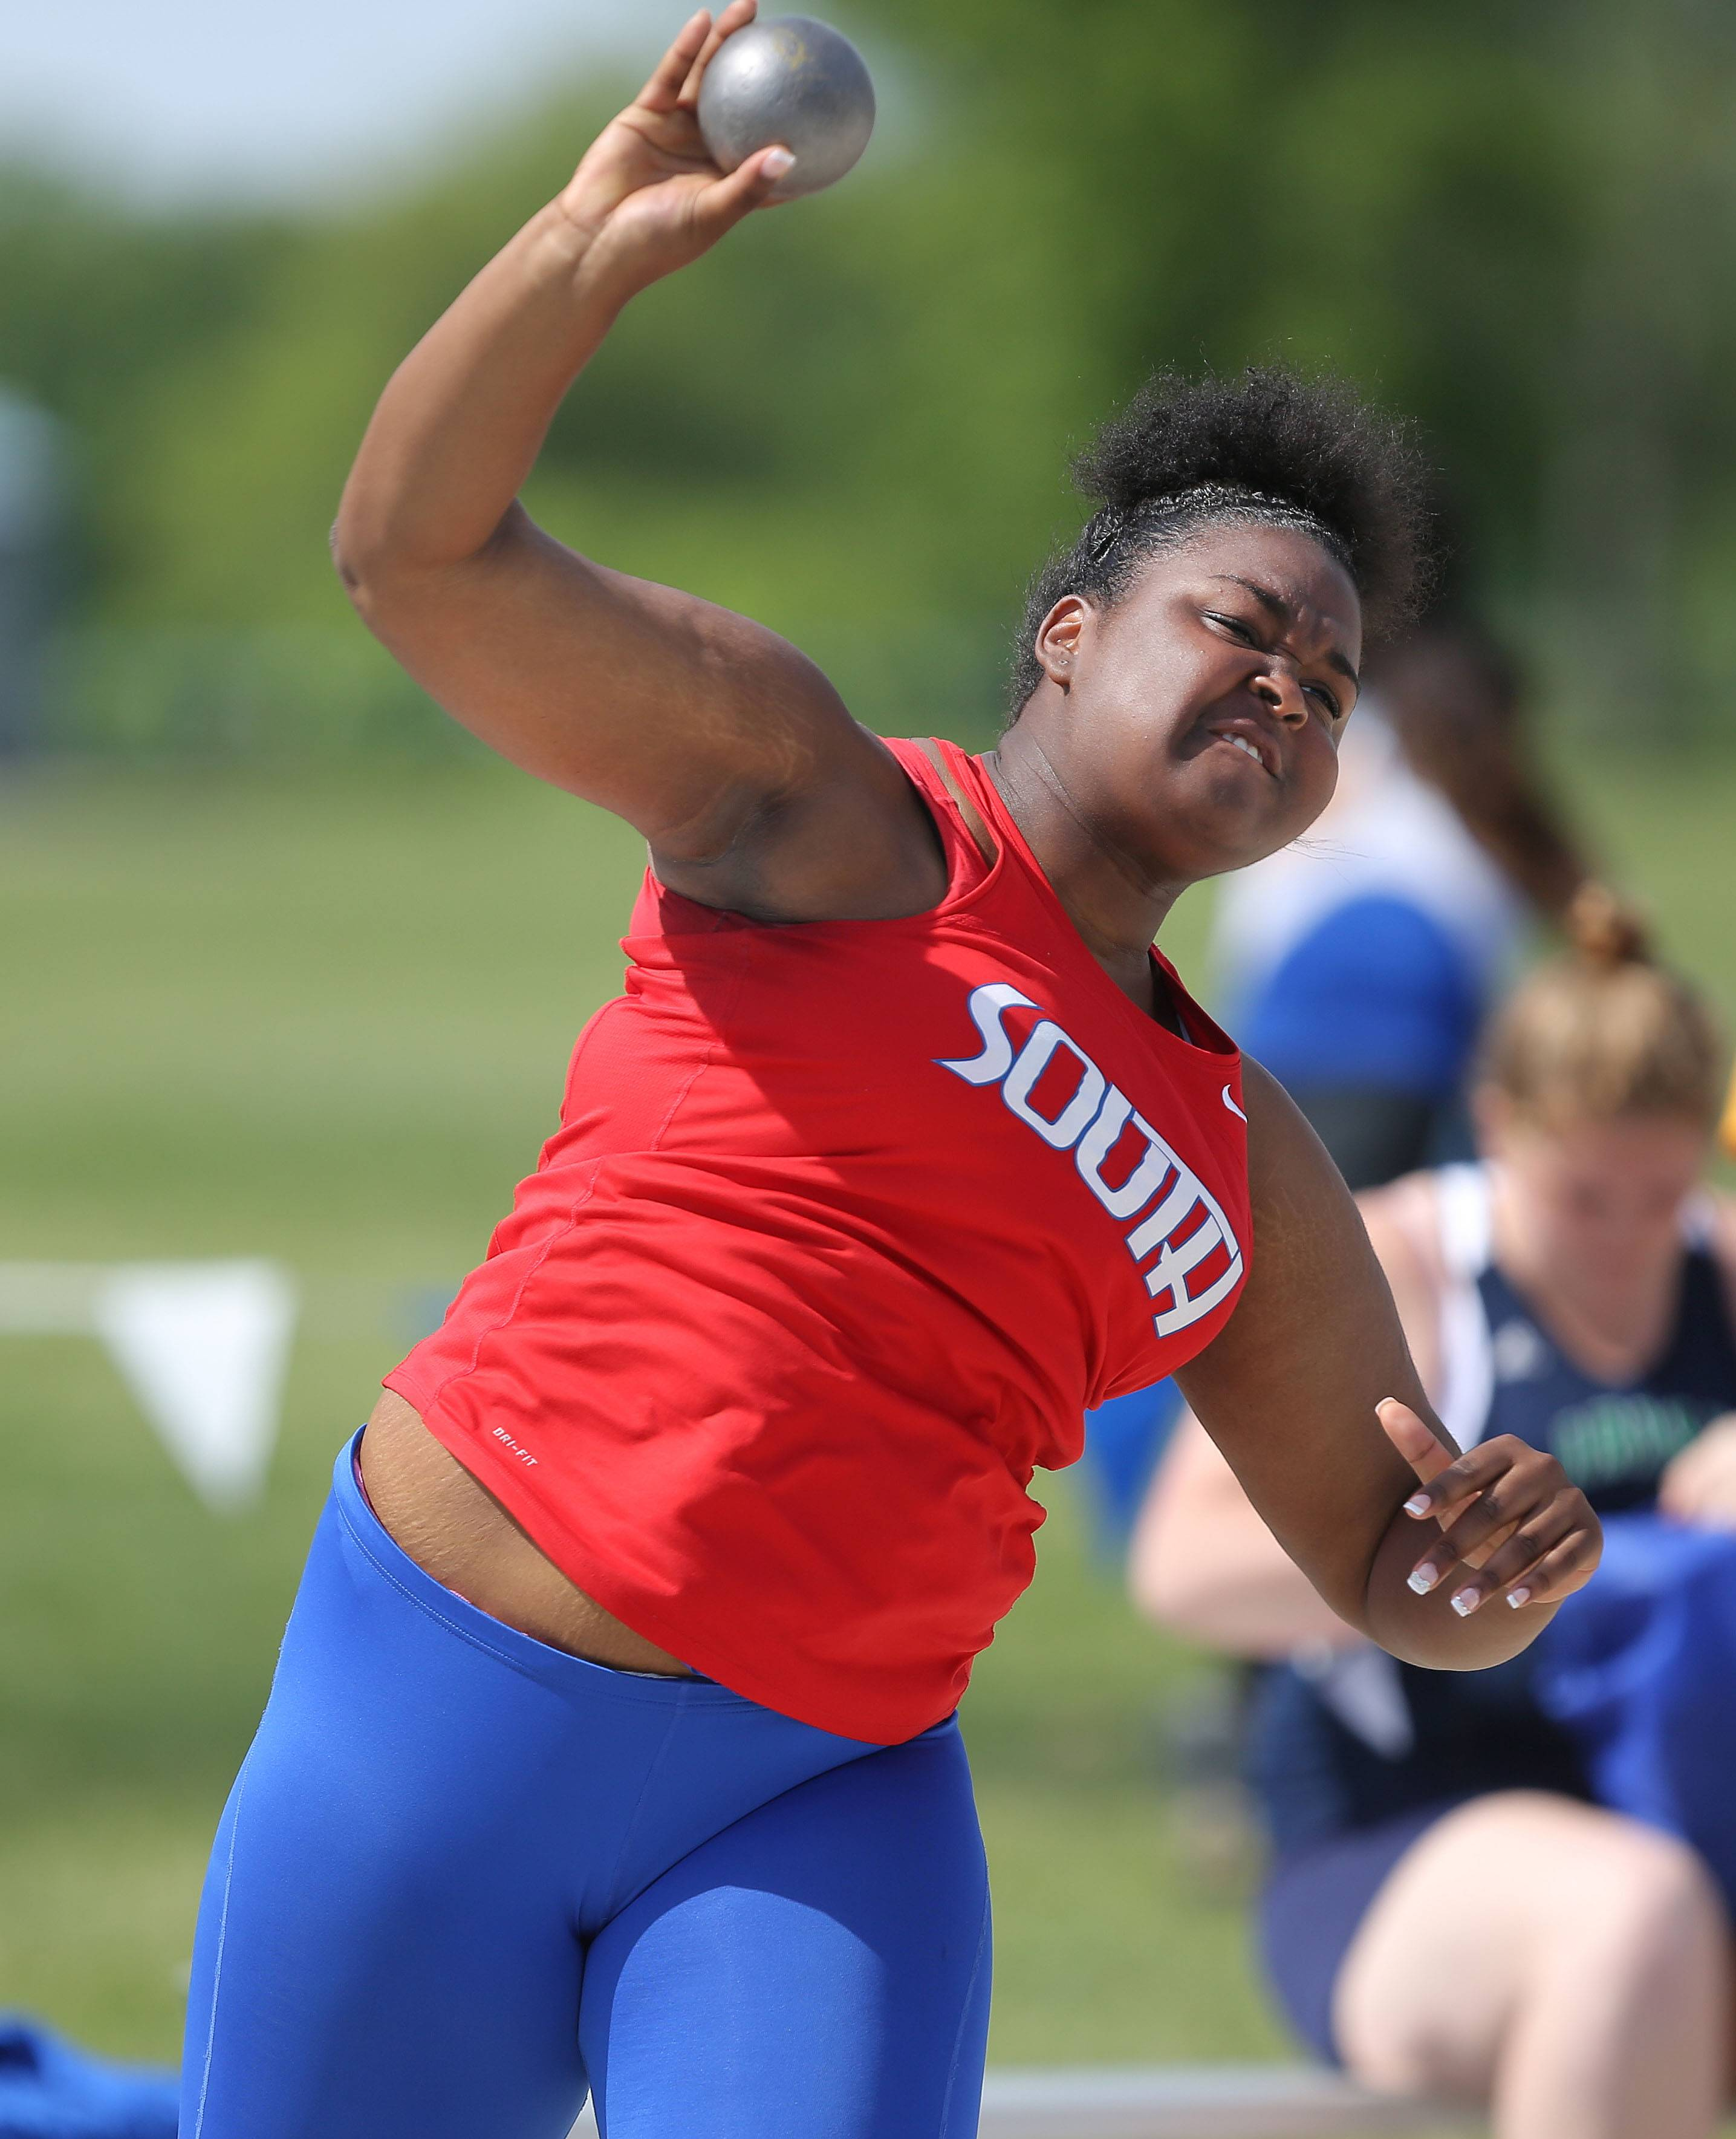 Glenbard South's Mercedes Whitaker competes in the class 2A shot put during the girls track and field state finals at Eastern Illinois University in Charleston Saturday.